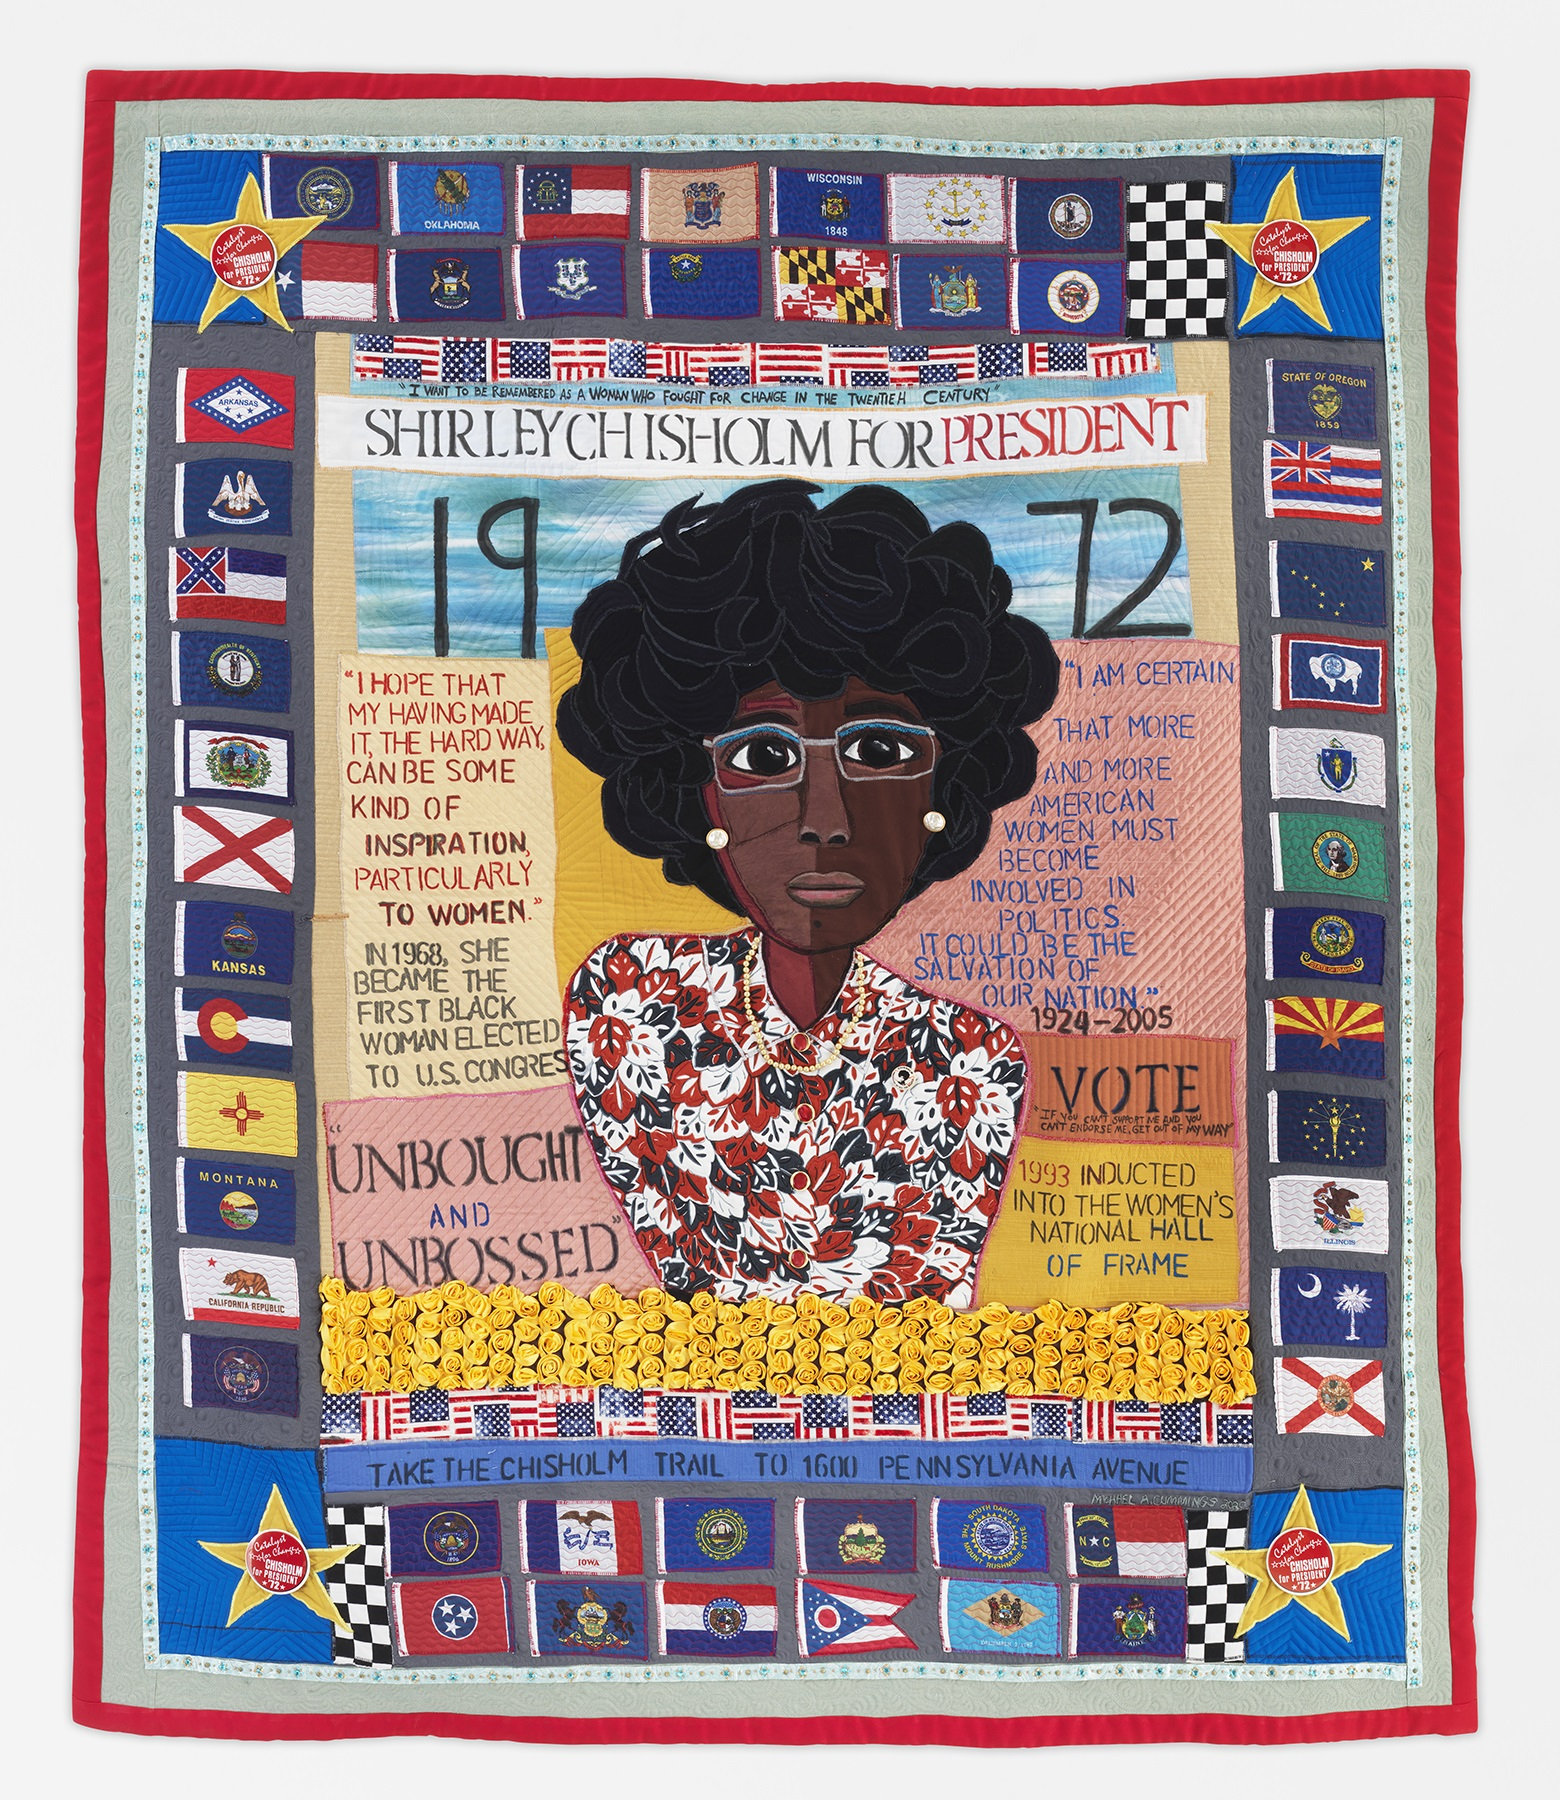 Shirley Chisholm Quilt with text about her political acheivements